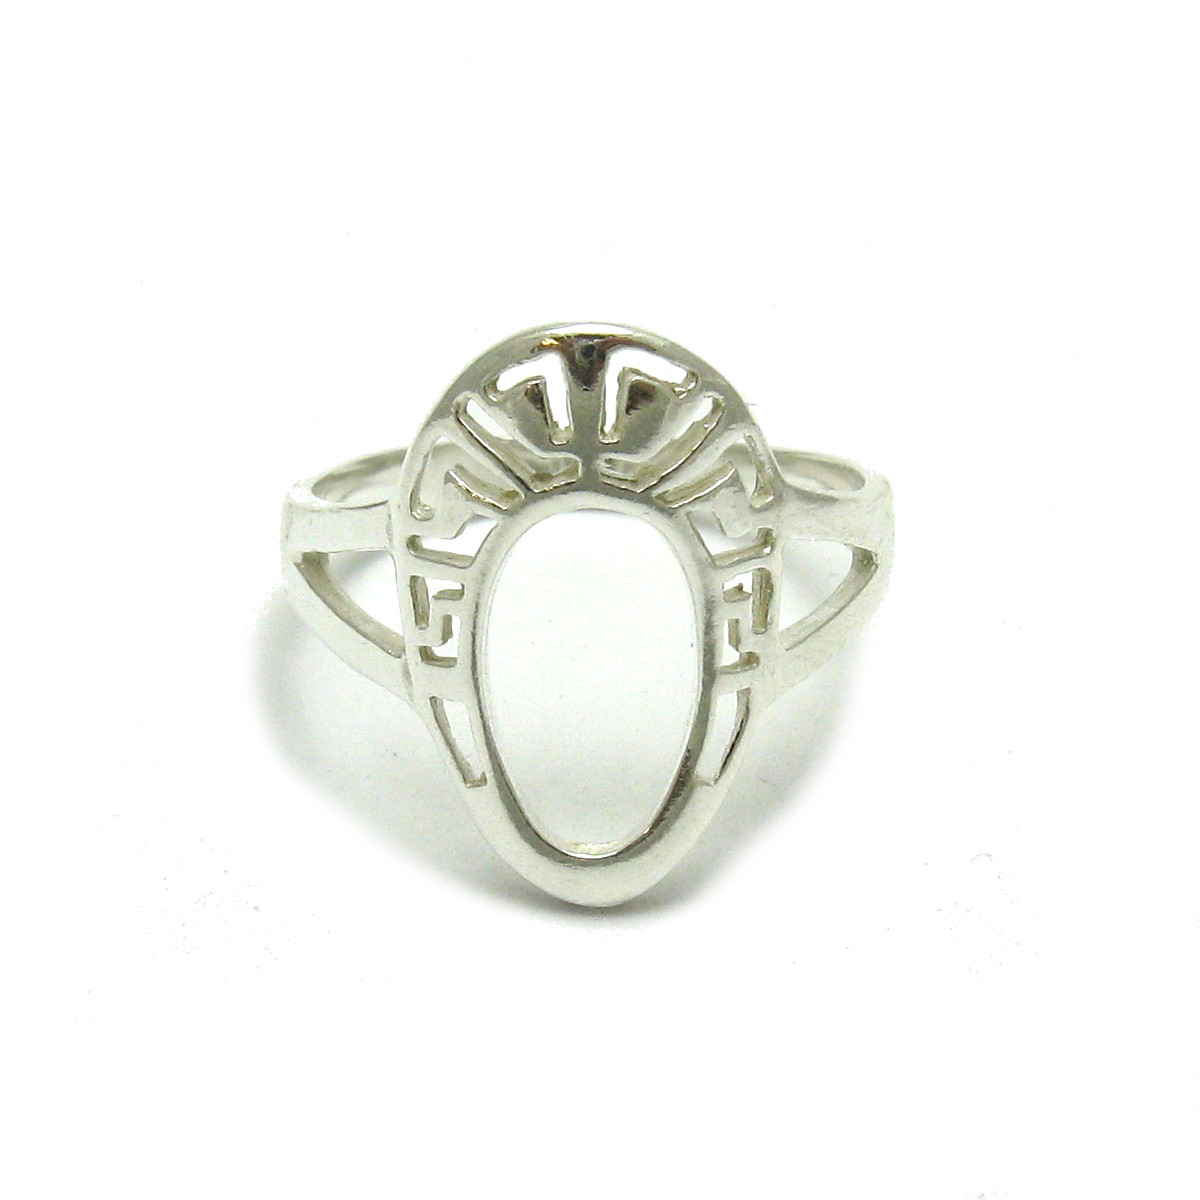 Silver ring - R001652